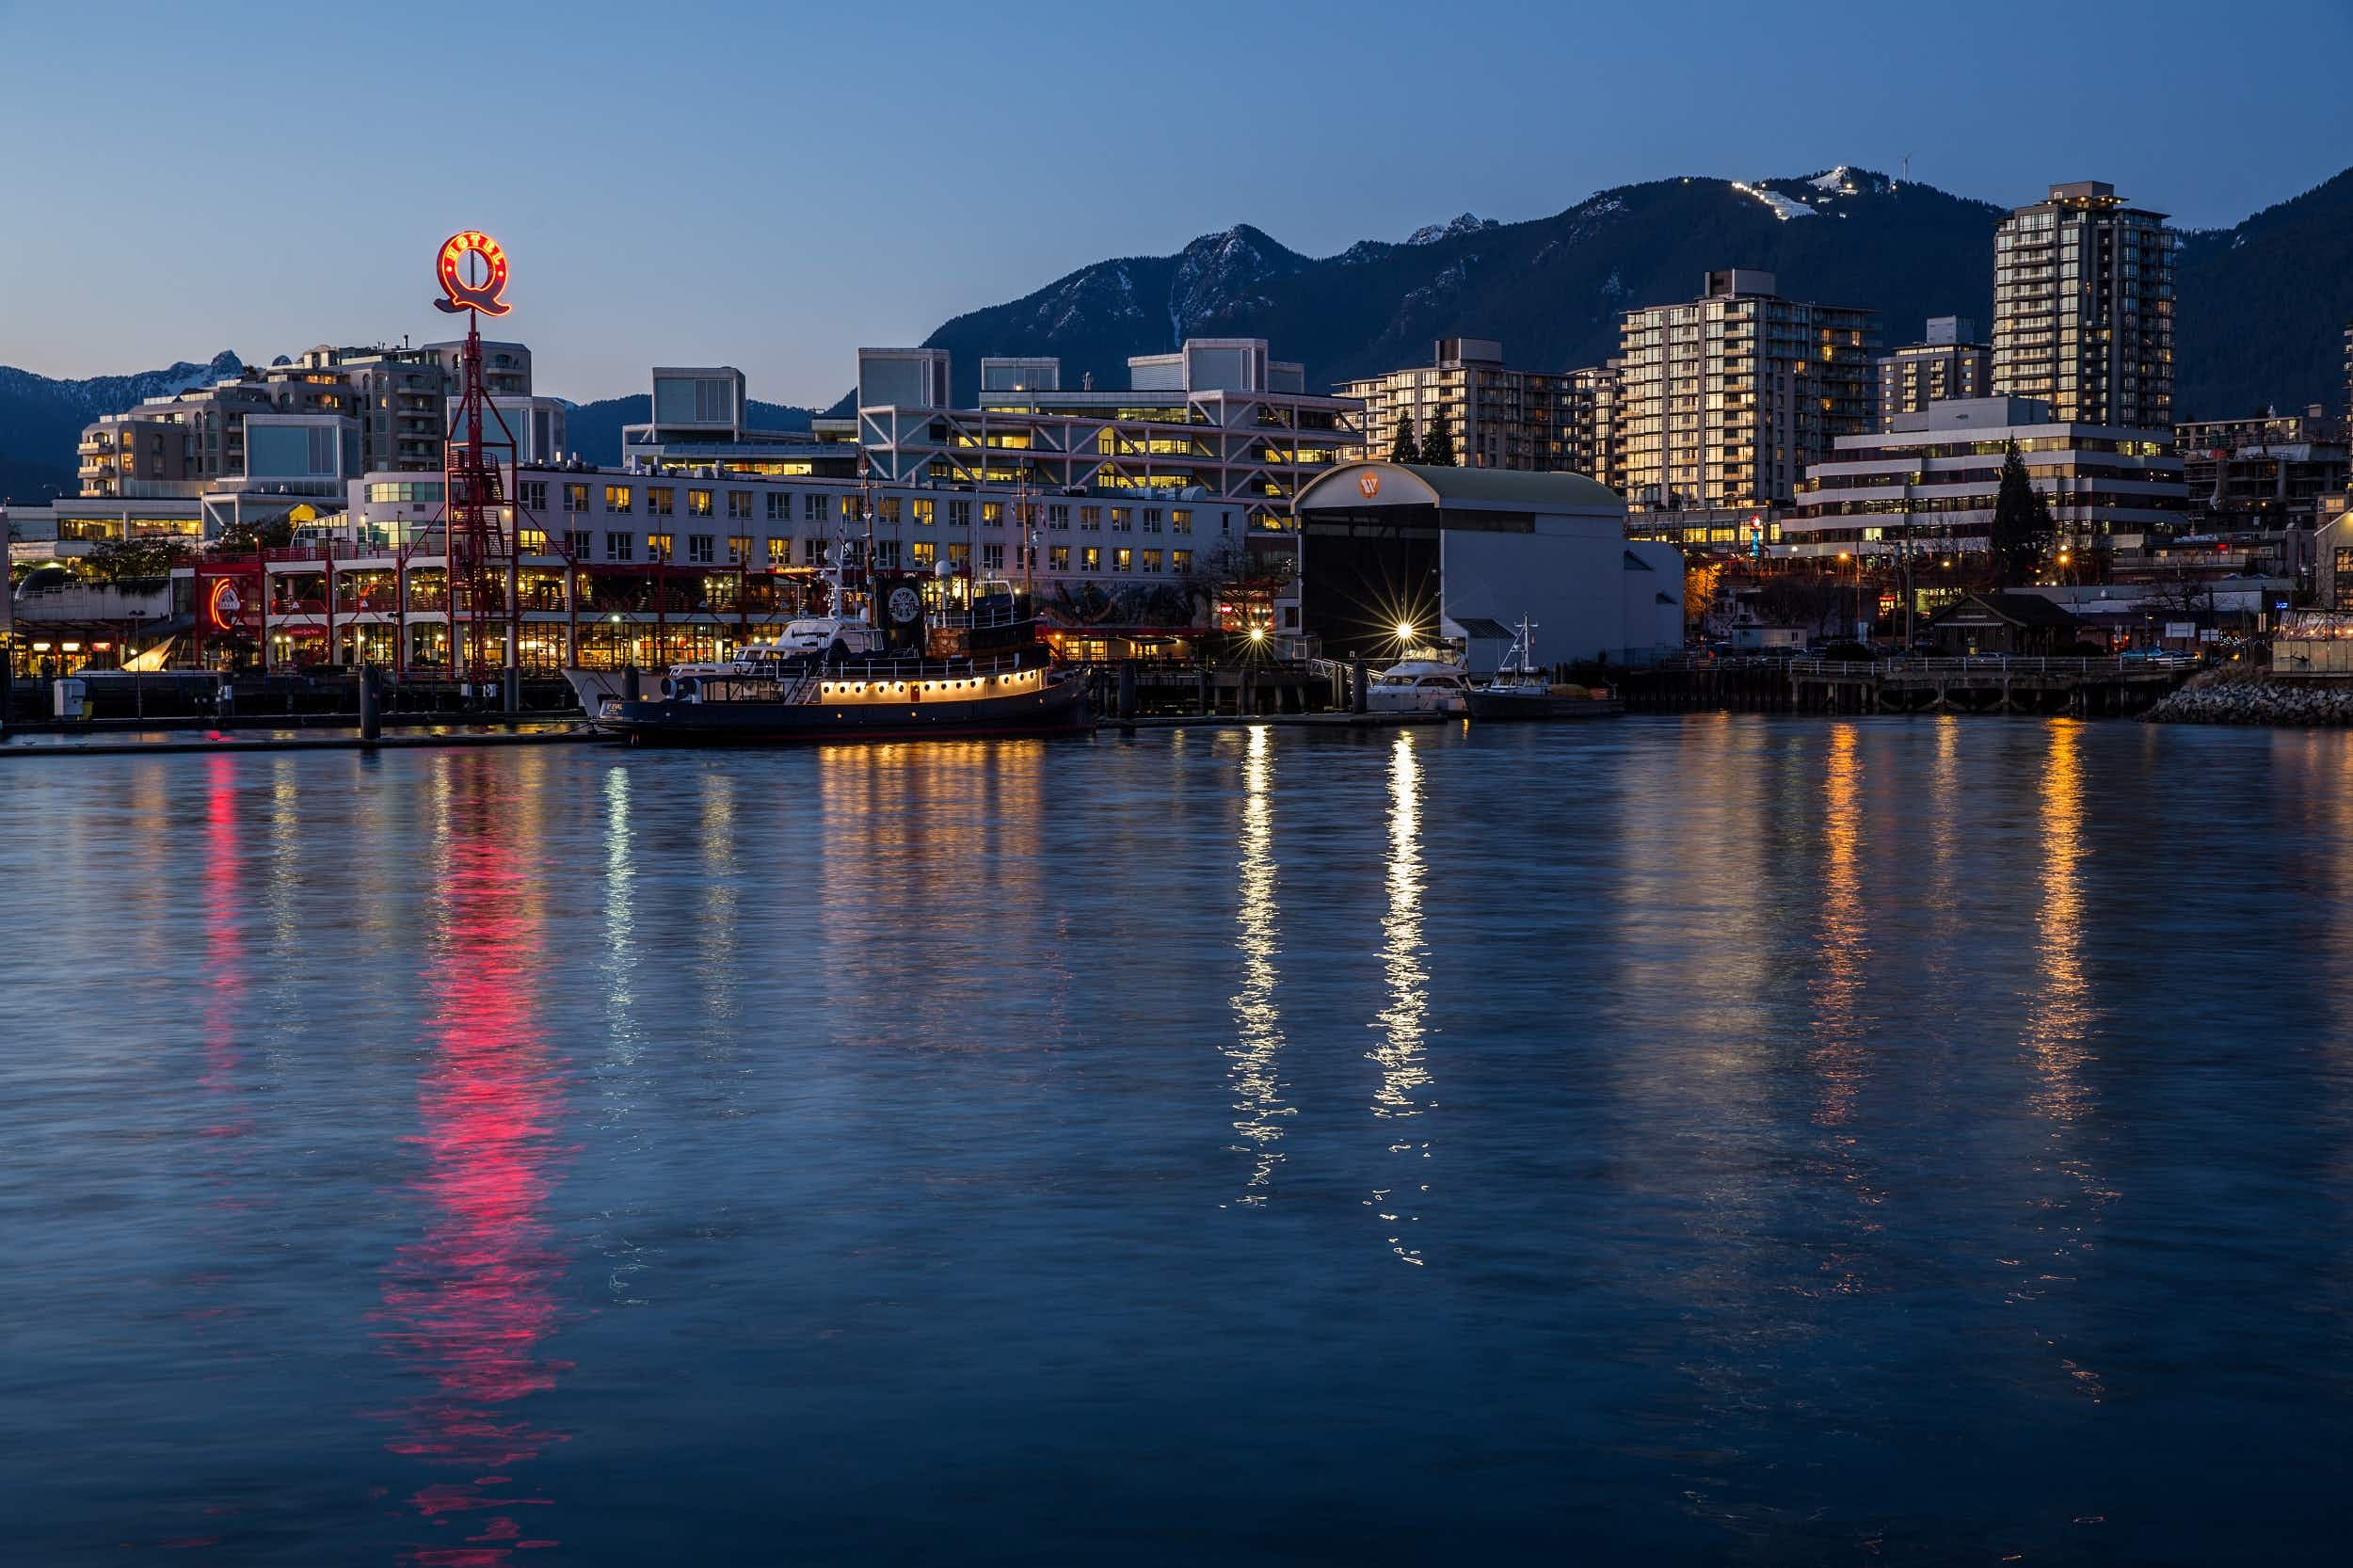 The lights of Lonsdale Quay on the shore of North Vancouver © Kim Rogerson / Getty Images